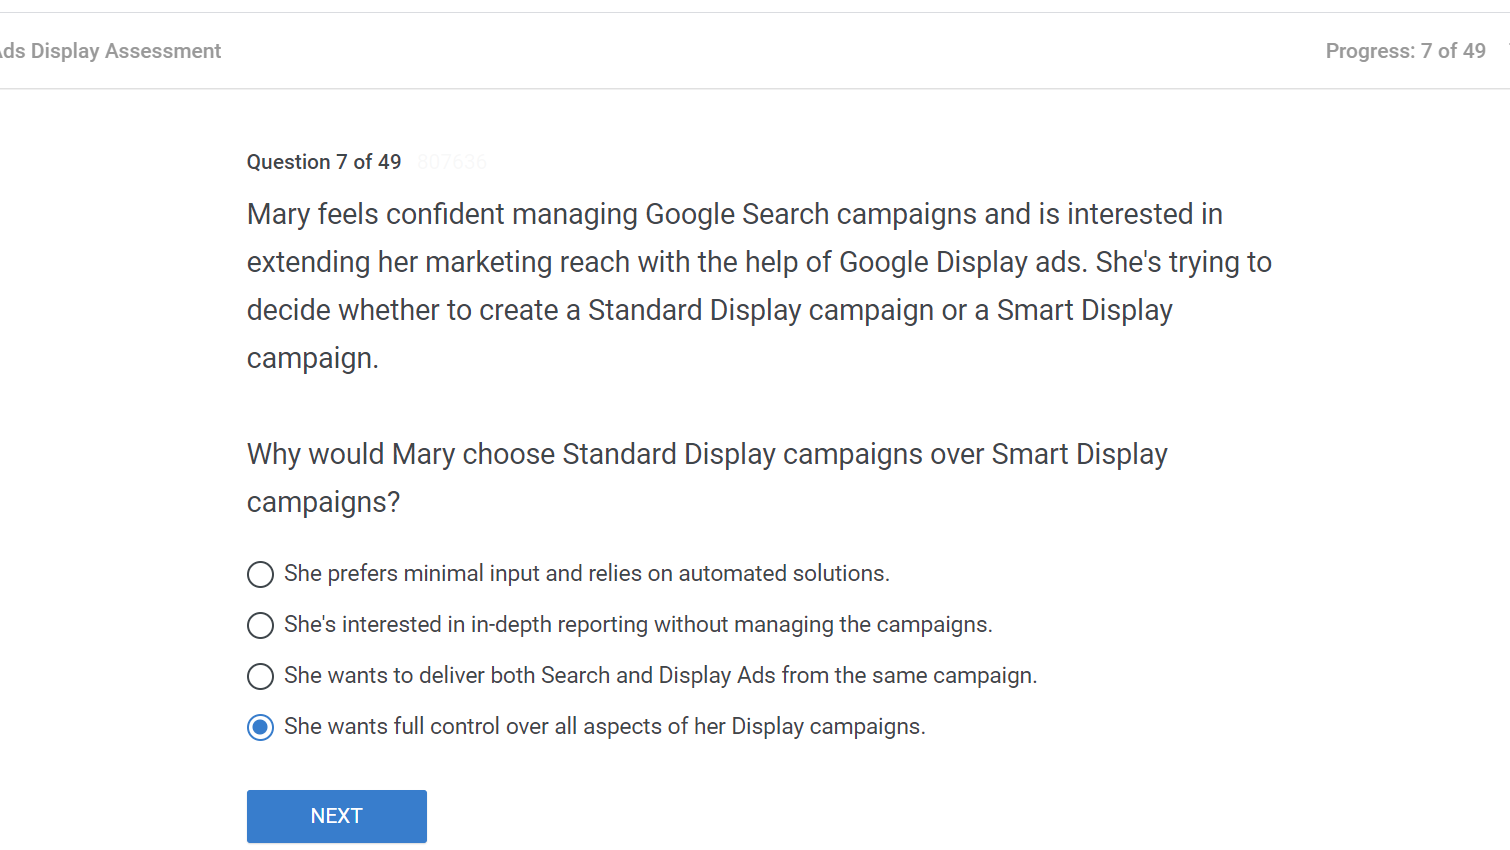 Mary feels confident managing Google Search campaigns and is interested in extending her marketing reach with the help of Google Display ads